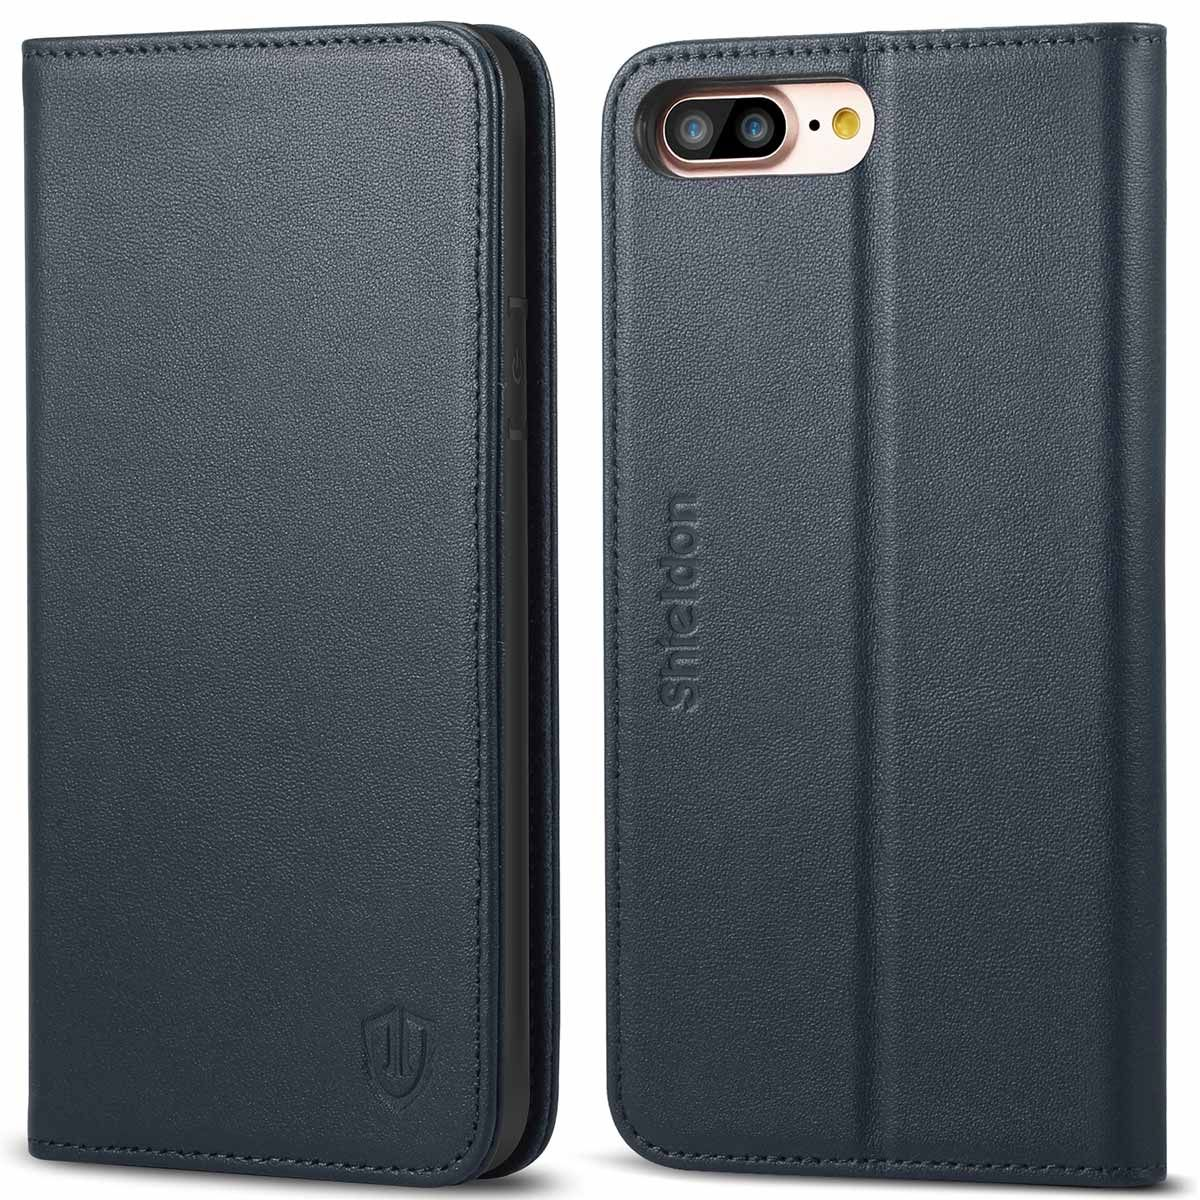 hot sale online 05551 c8345 SHIELDON iPhone 8 Plus Wallet Case, iPhone 7 Plus Wallet Case - Genuine  Leather Cover, Kickstand, Flip Cover